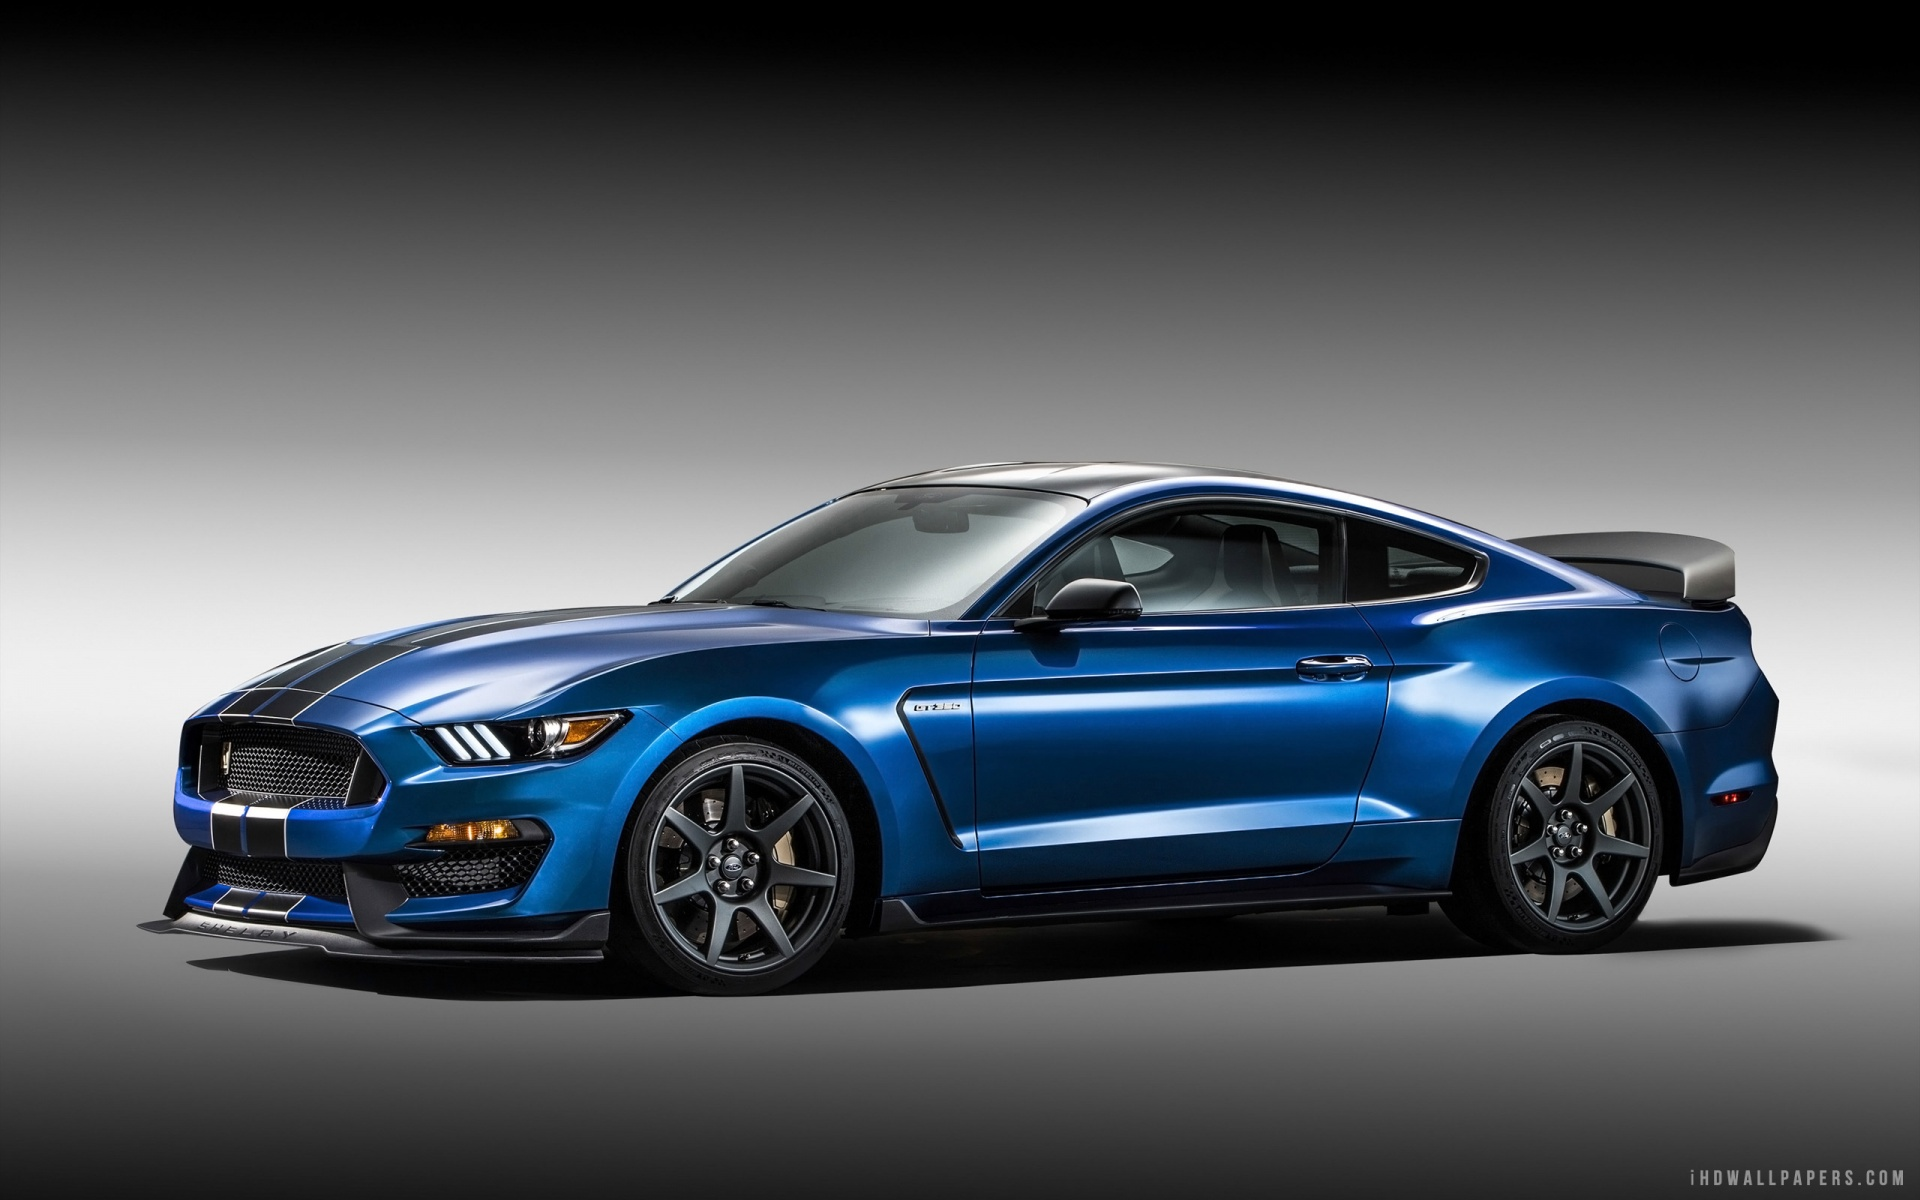 2016 Ford Mustang Shelby GT350 HD Wallpaper   iHD Wallpapers 1920x1200